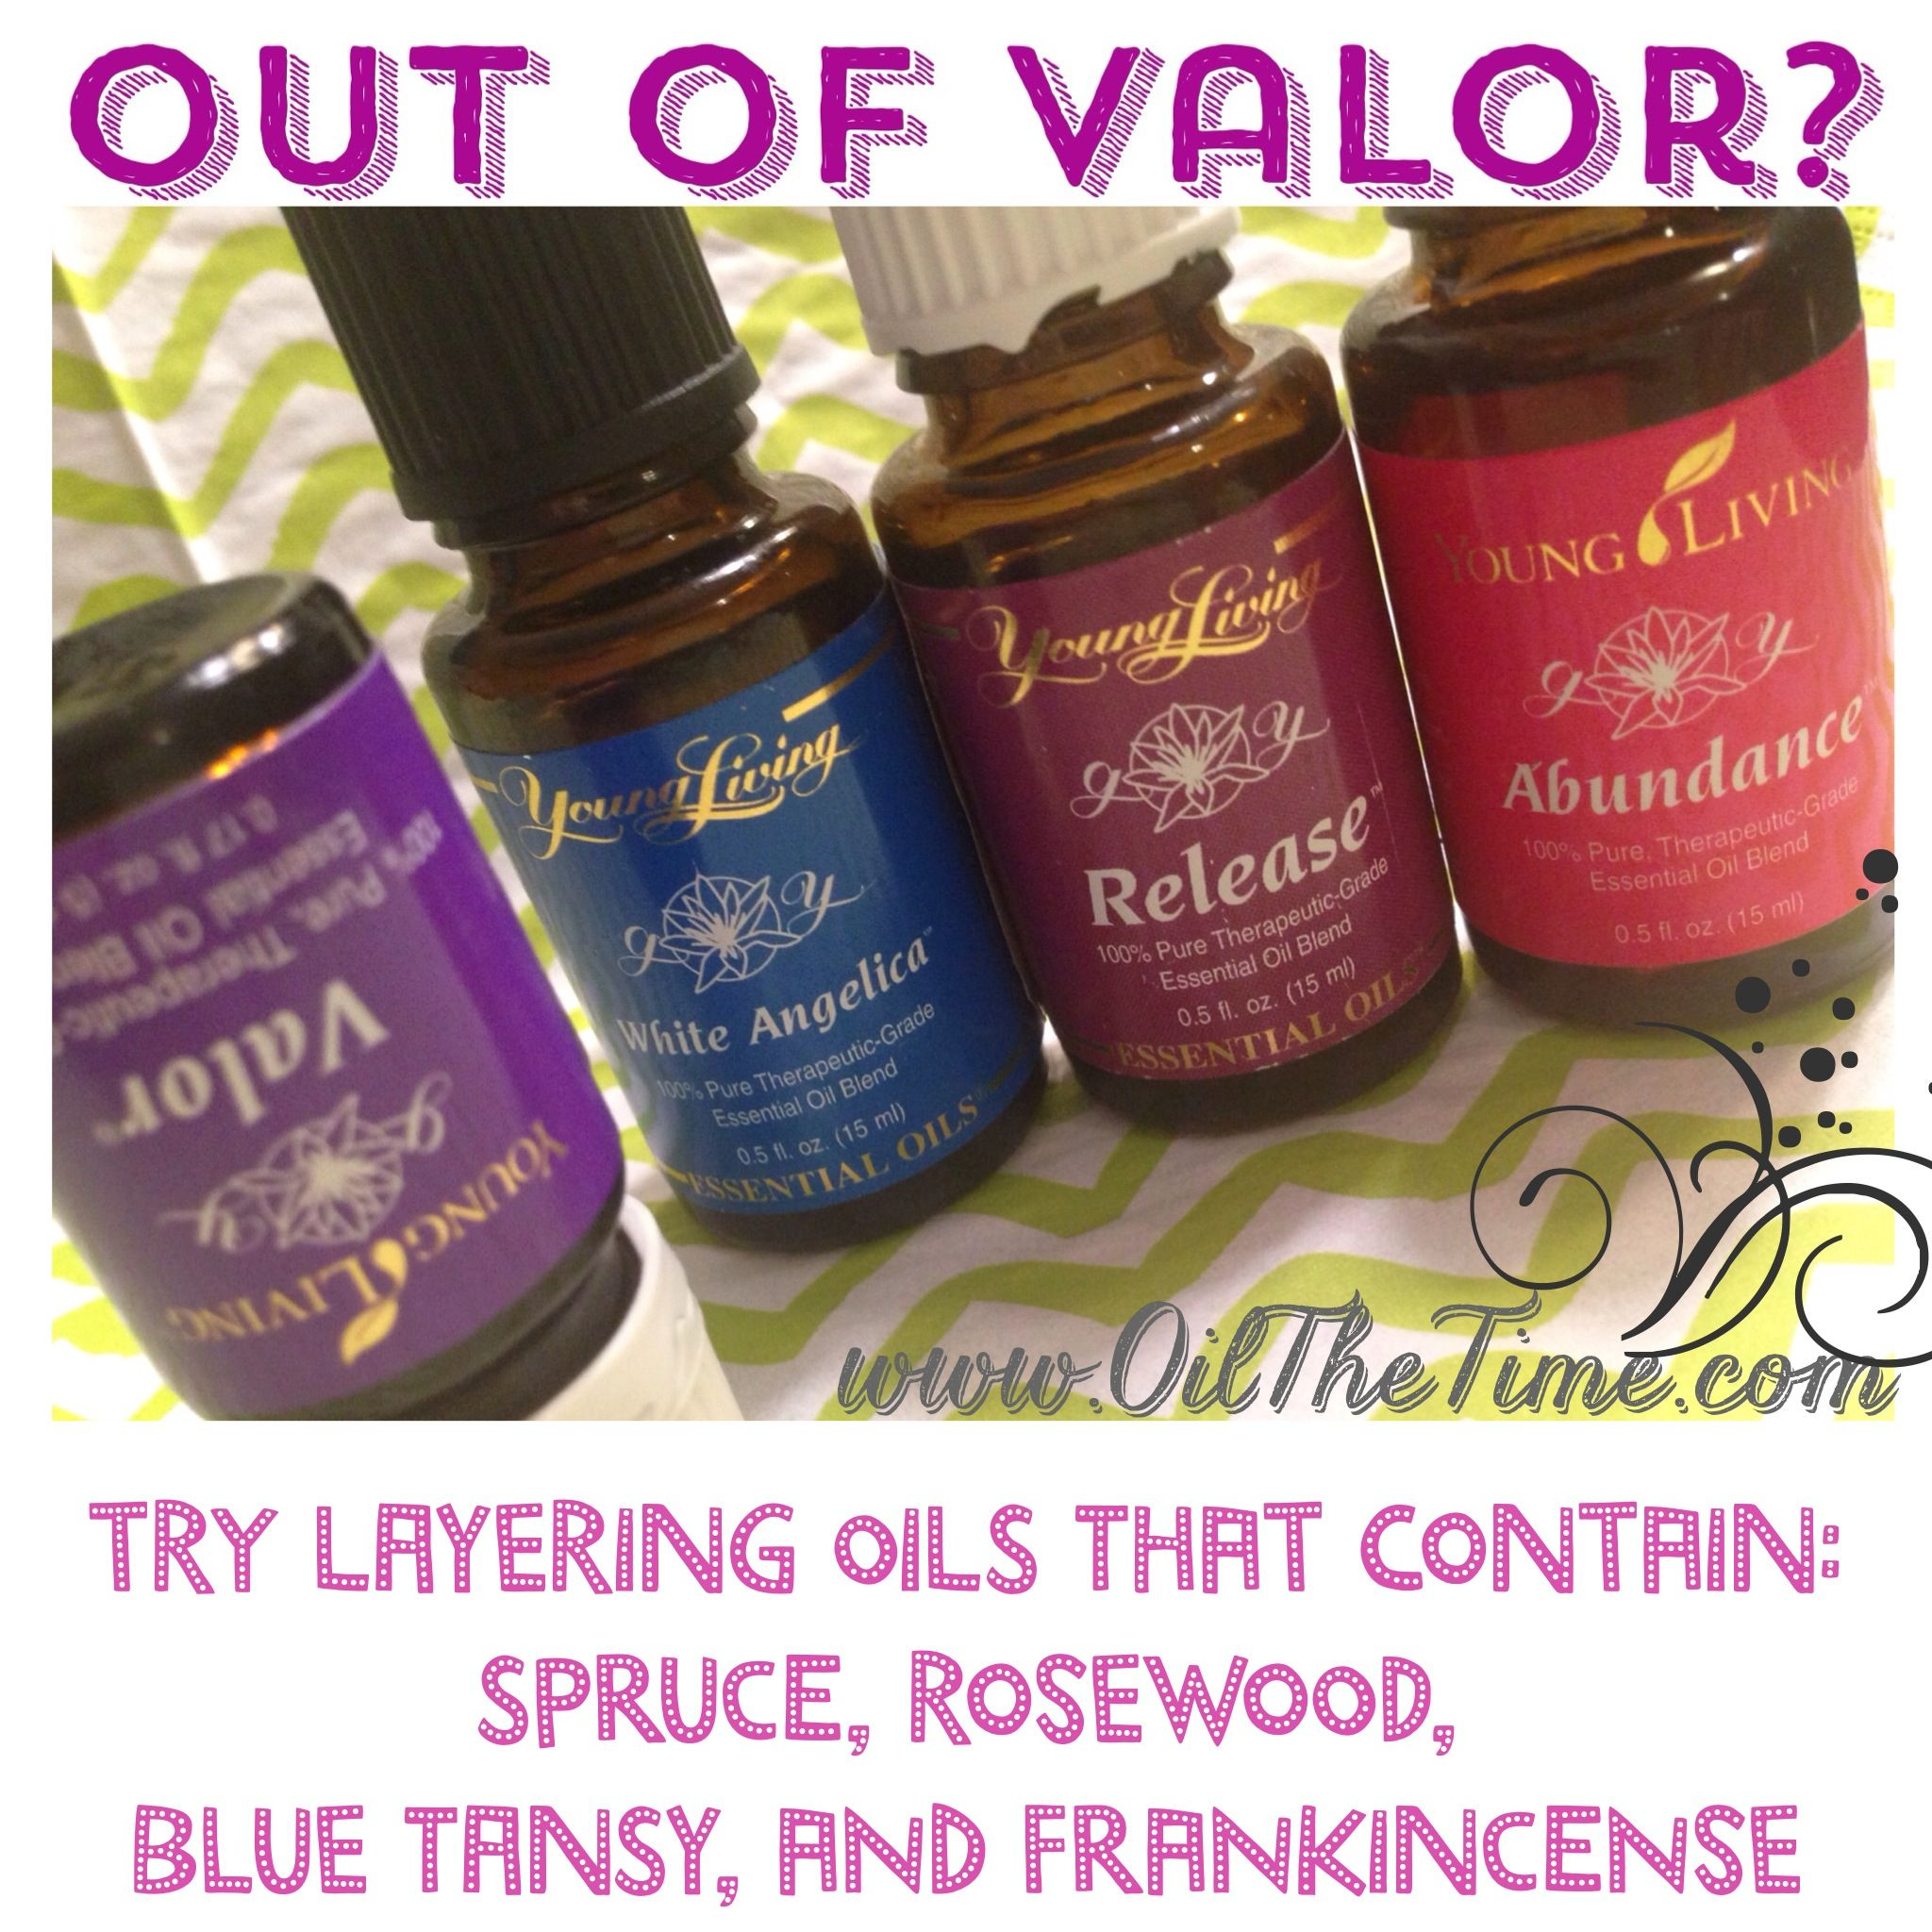 Valor is out of stock... So get creative!! www.younglivingfoxvalley.com ID 1277353